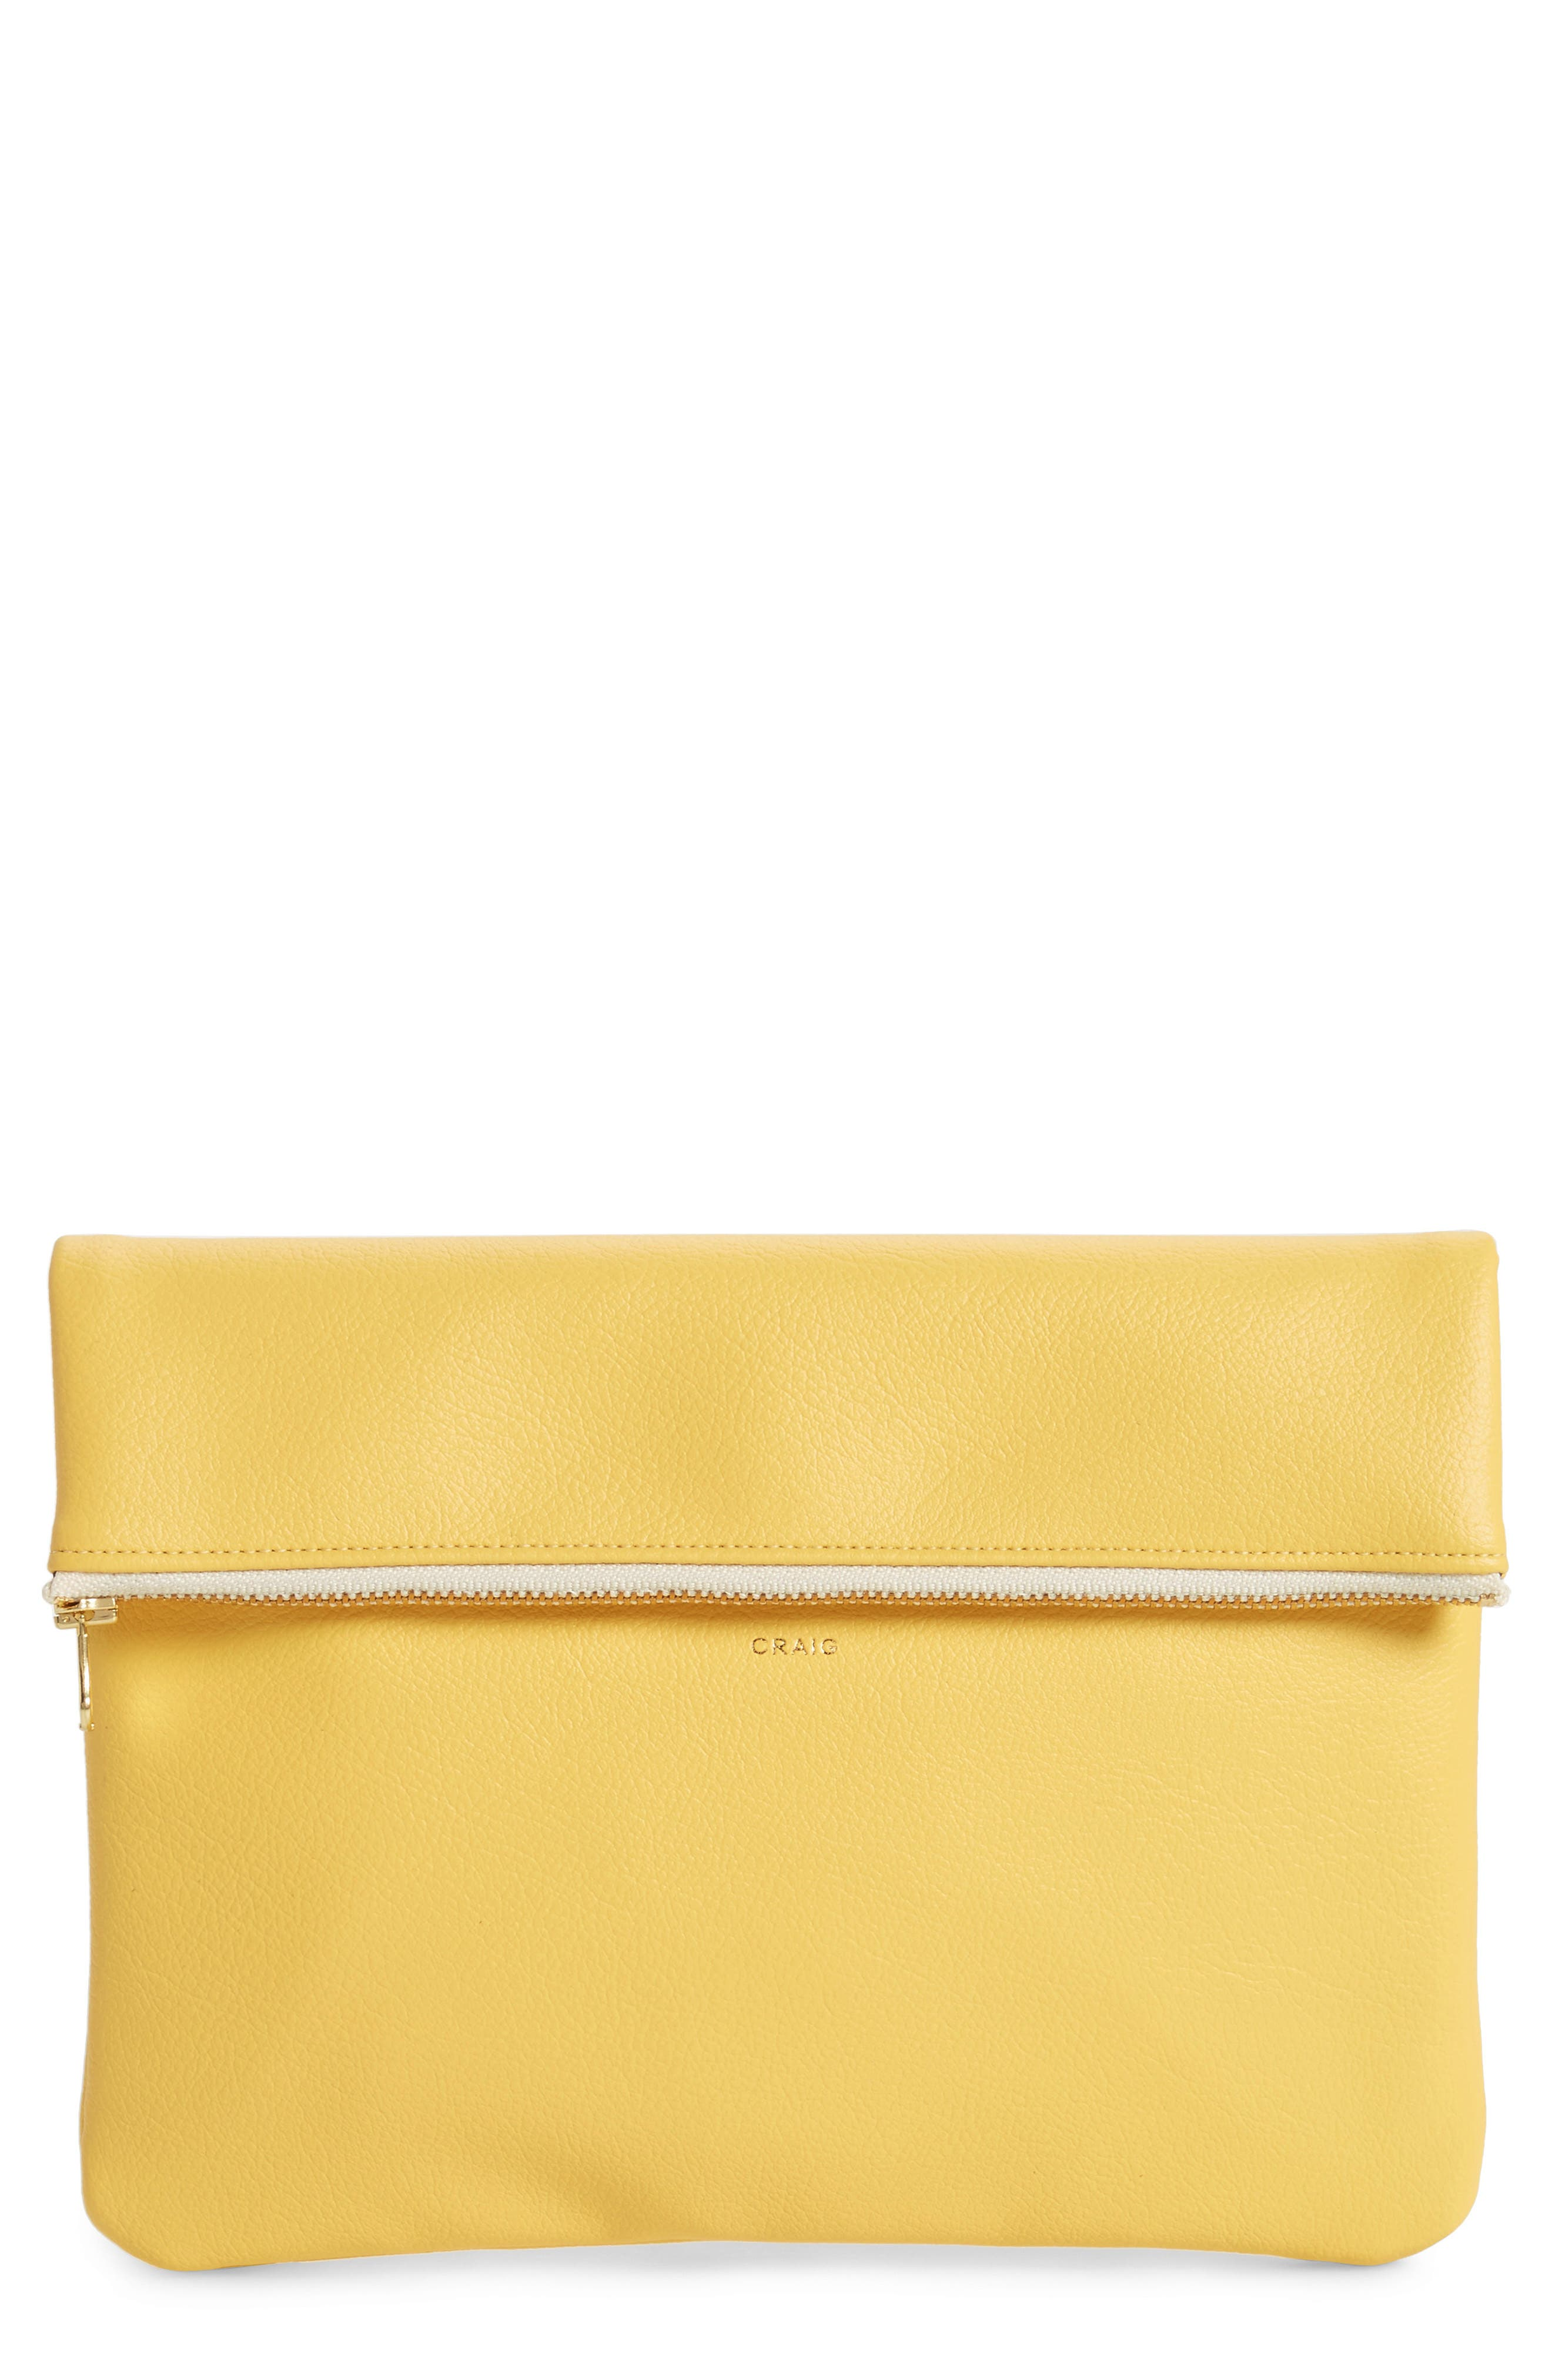 Alternate Image 1 Selected - MT Craig Medium Faux Leather Clutch